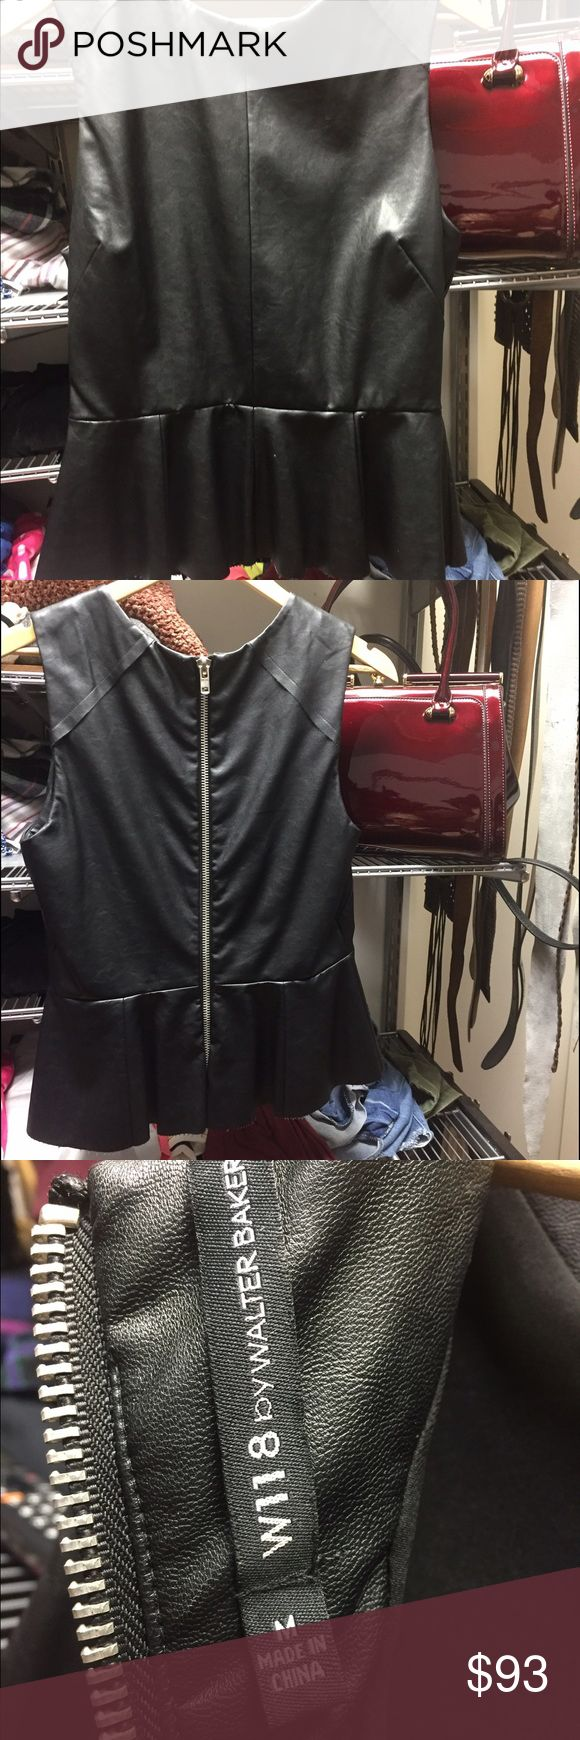 Beautiful leather peplum top Only worn once!!!! So cute and so comfy! It really is great quality W118 by Walter Baker Tops Blouses